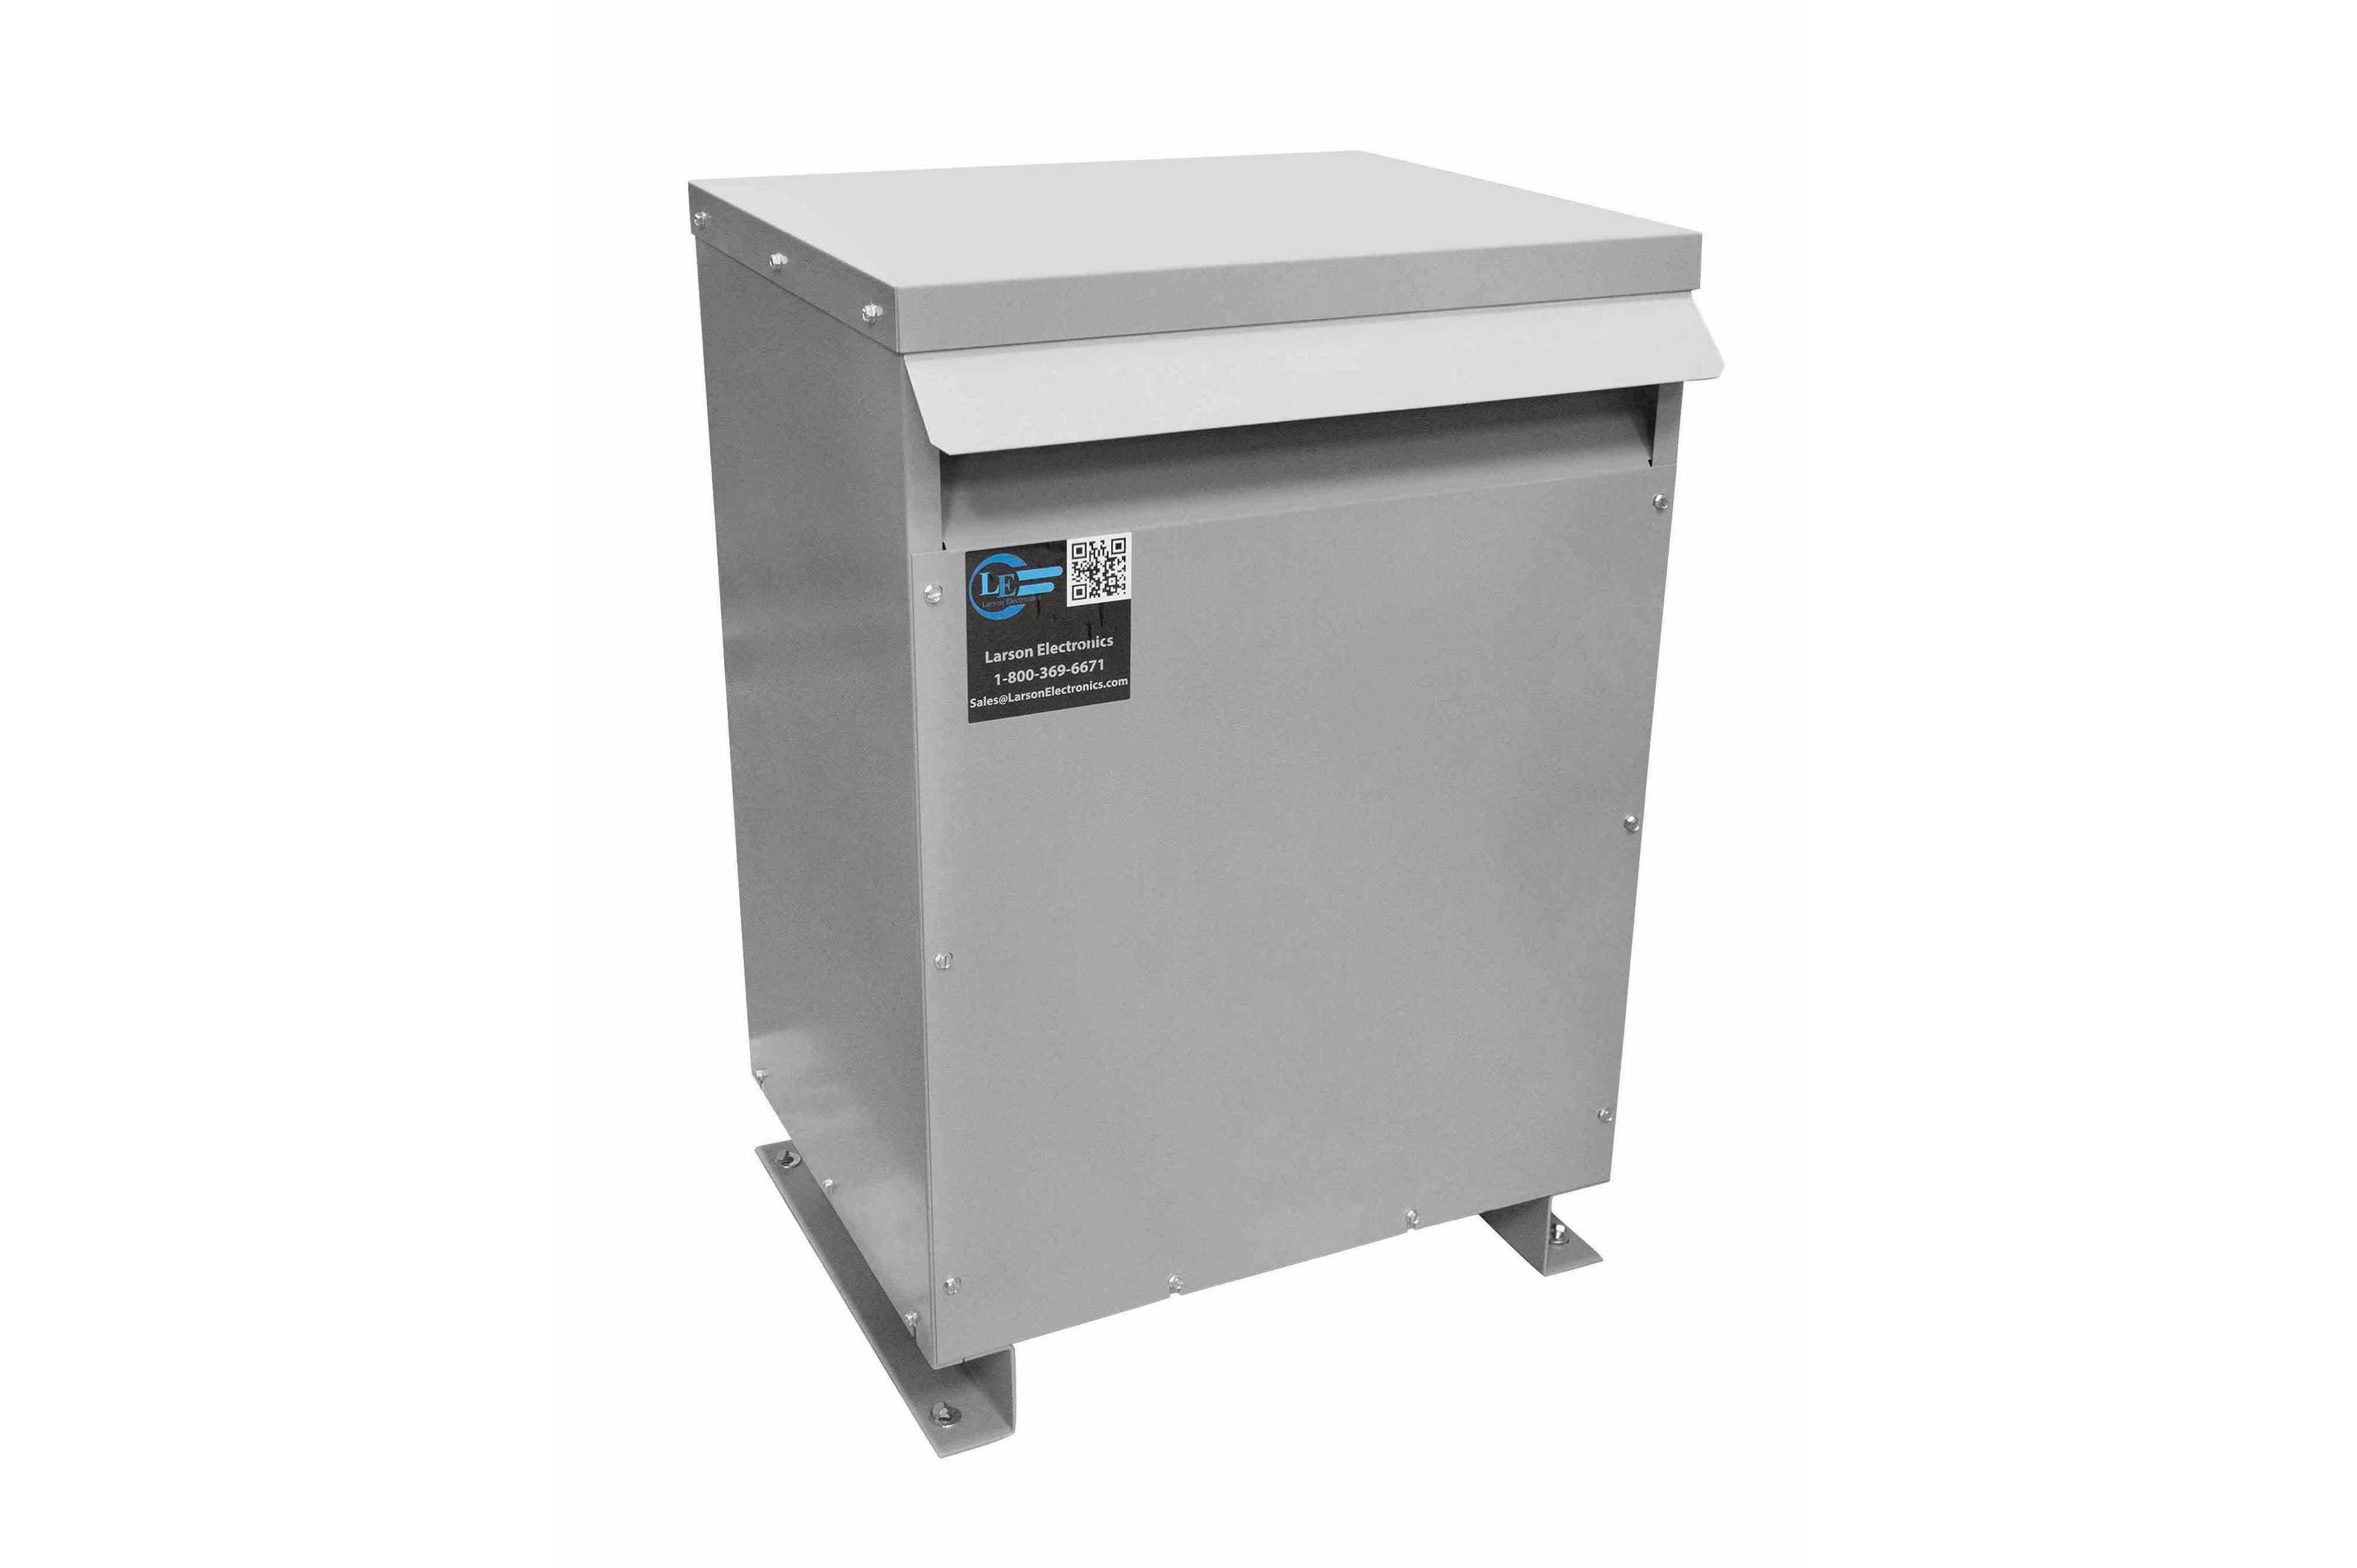 12 kVA 3PH Isolation Transformer, 460V Wye Primary, 208V Delta Secondary, N3R, Ventilated, 60 Hz